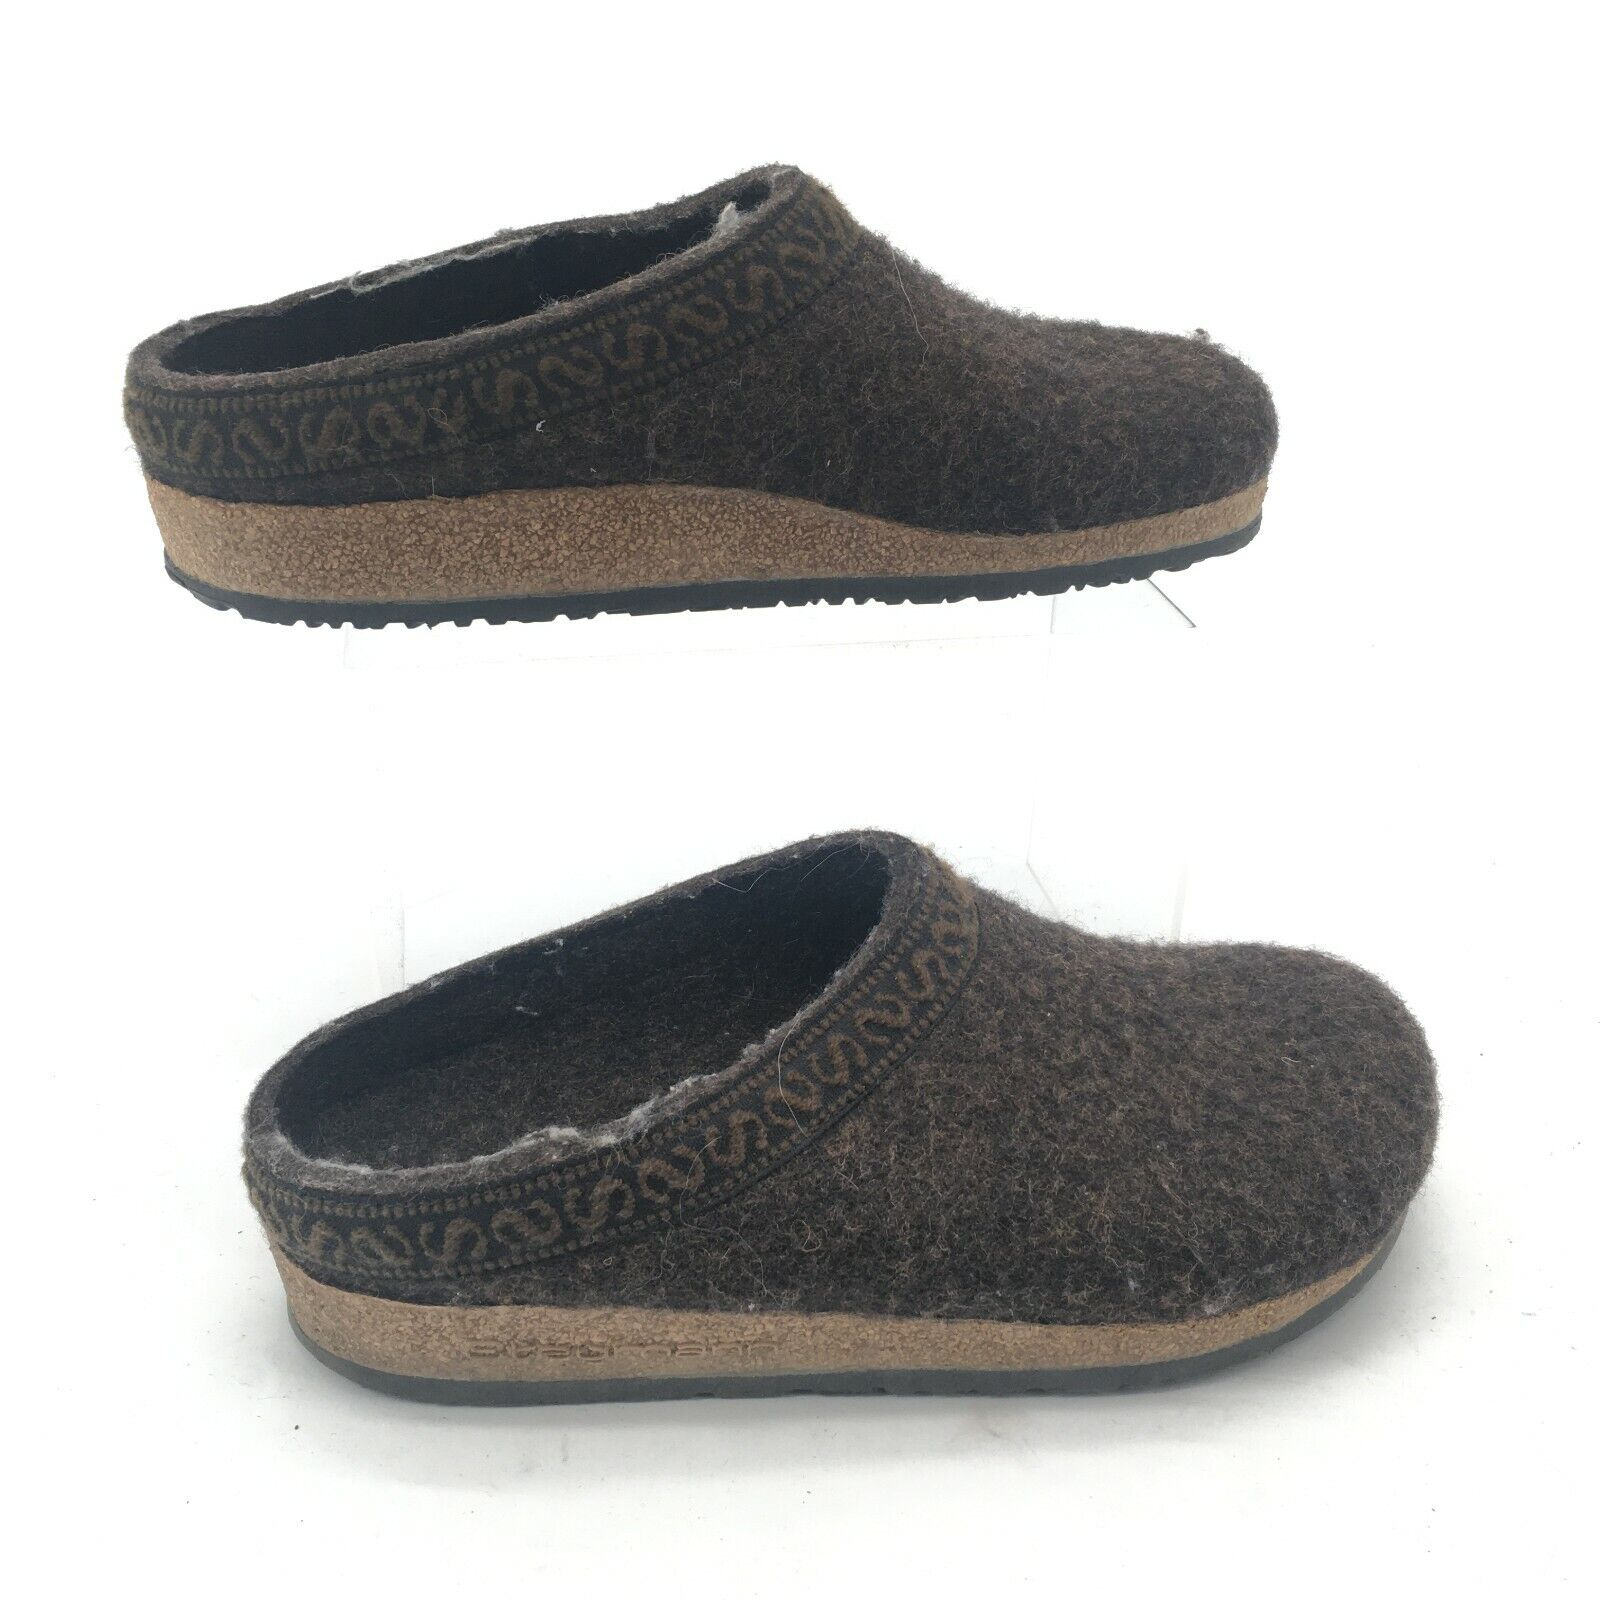 Stegman Womens 37 Slip On Wool Clogs Mules Casual Comfort Shoes Brown Cork Sole